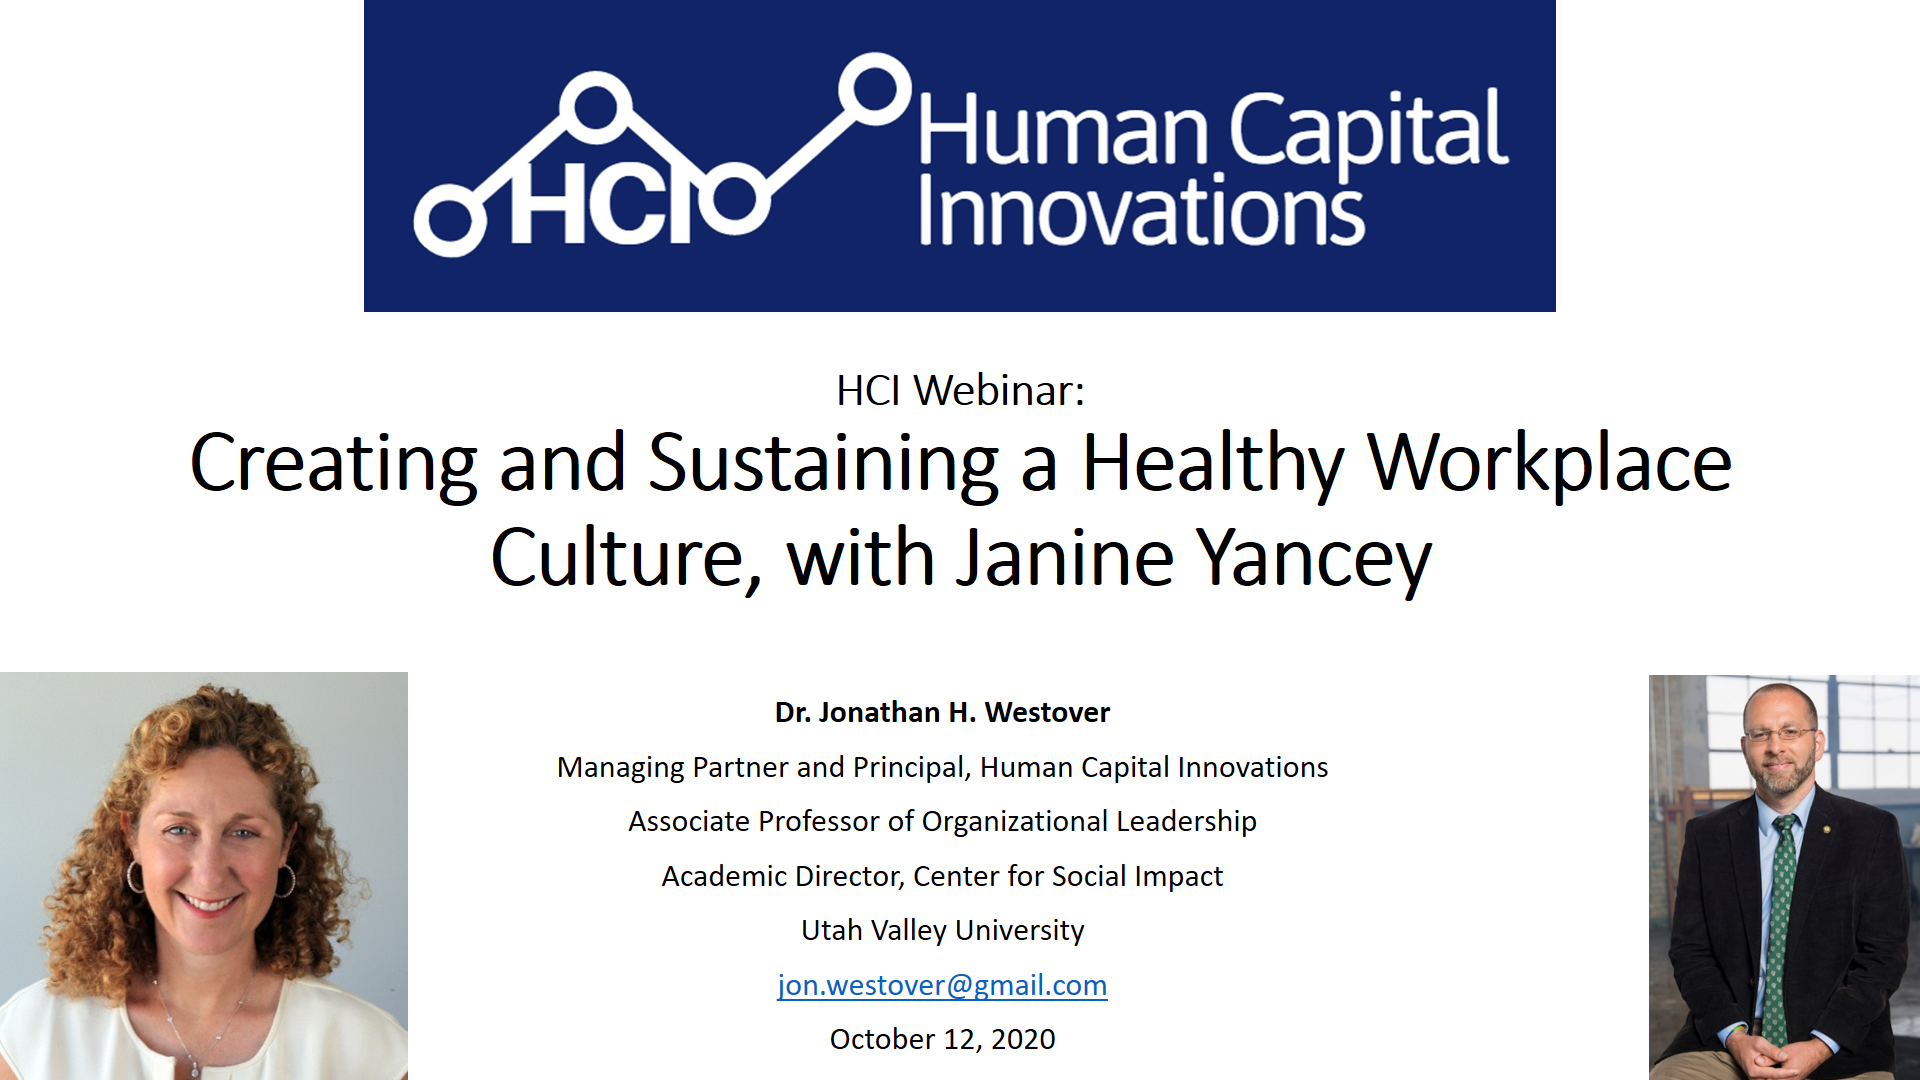 Creating and Sustaining a Healthy Workplace Culture